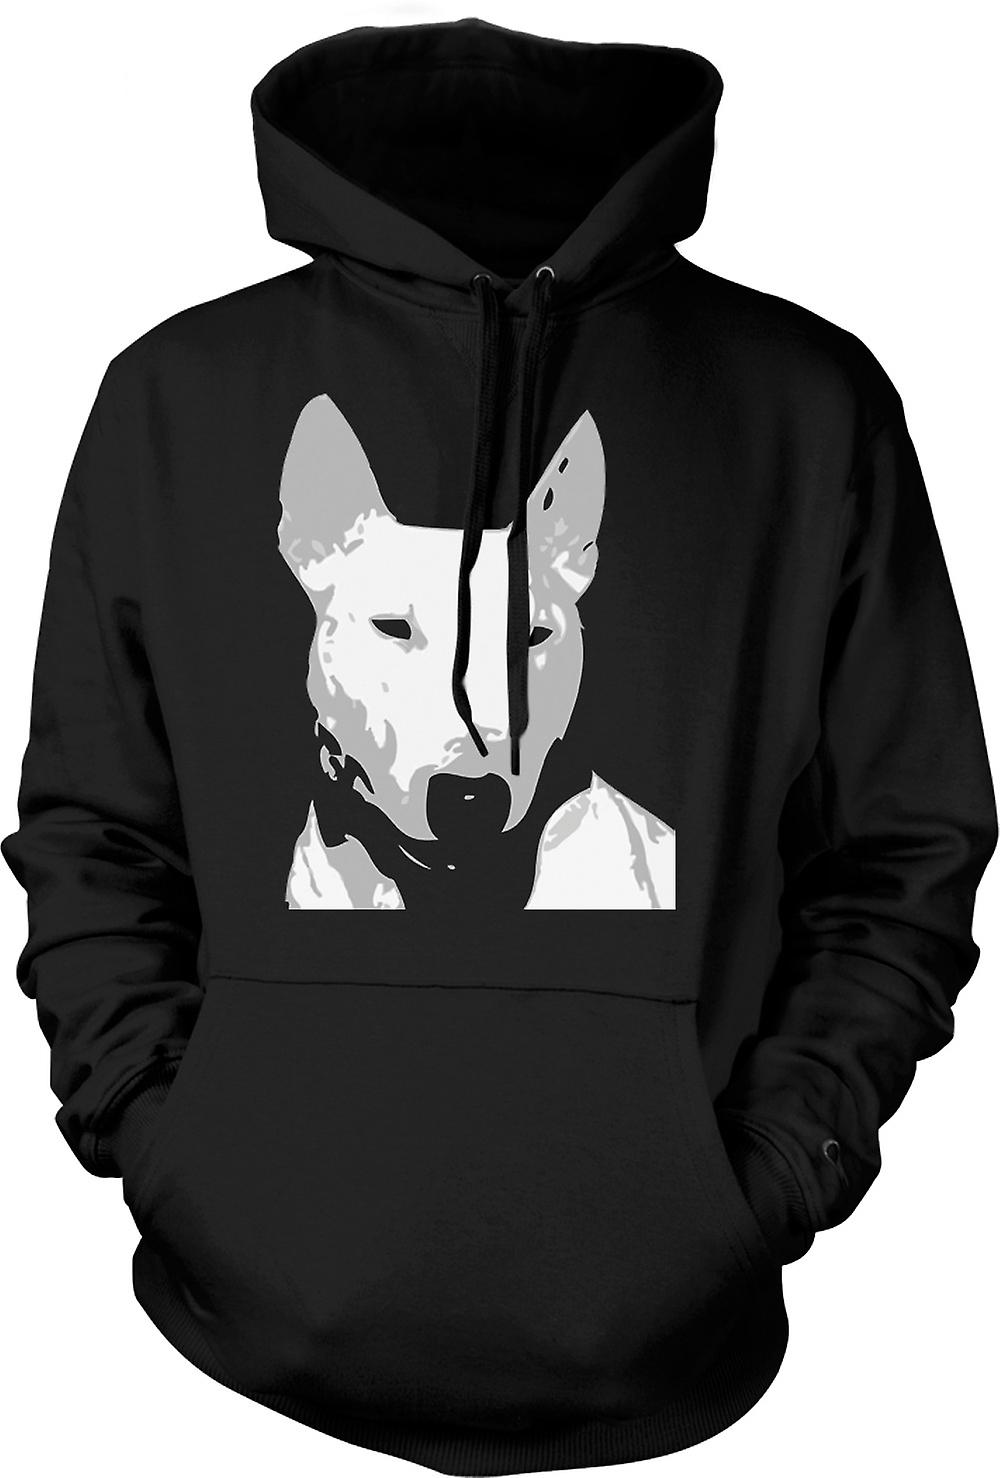 Kids Hoodie - English Bull Terrier - Pet Dog